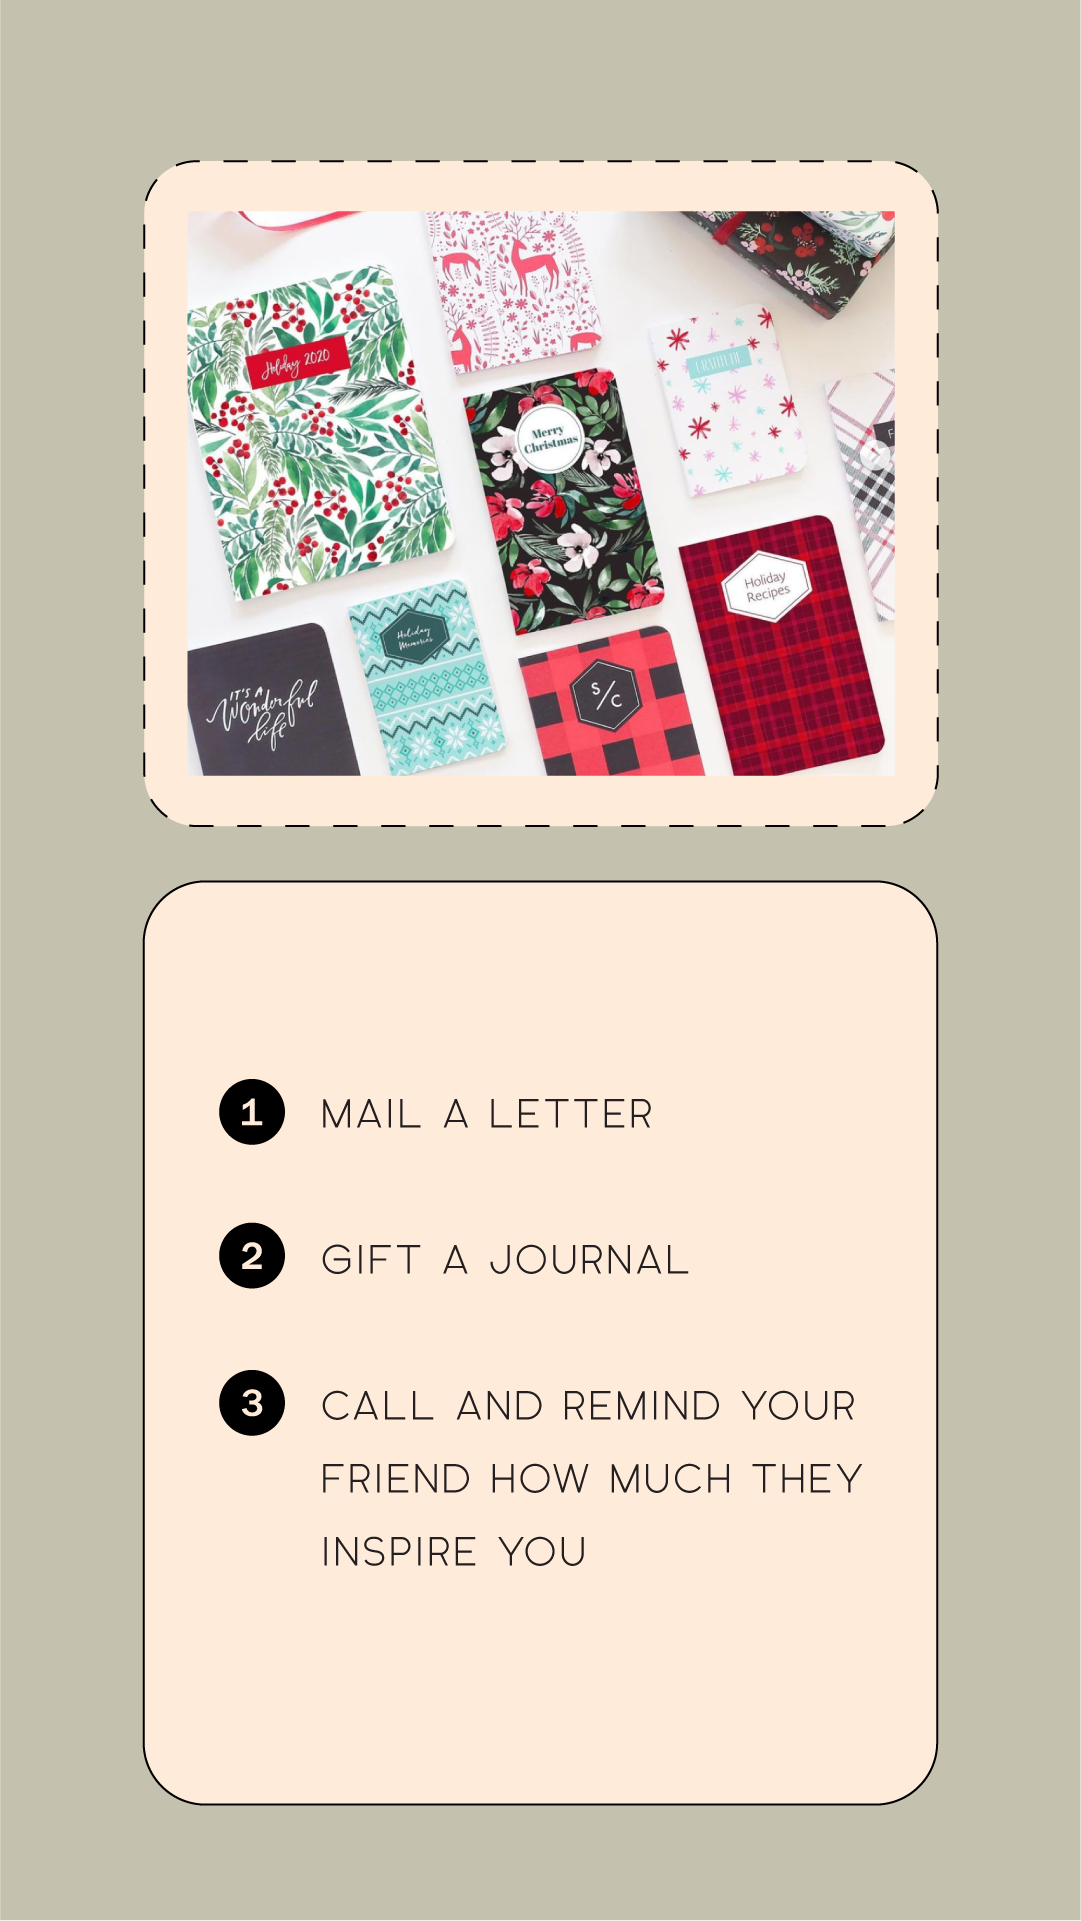 Gift Guide Template Collection - Blog Post - Artboard 4